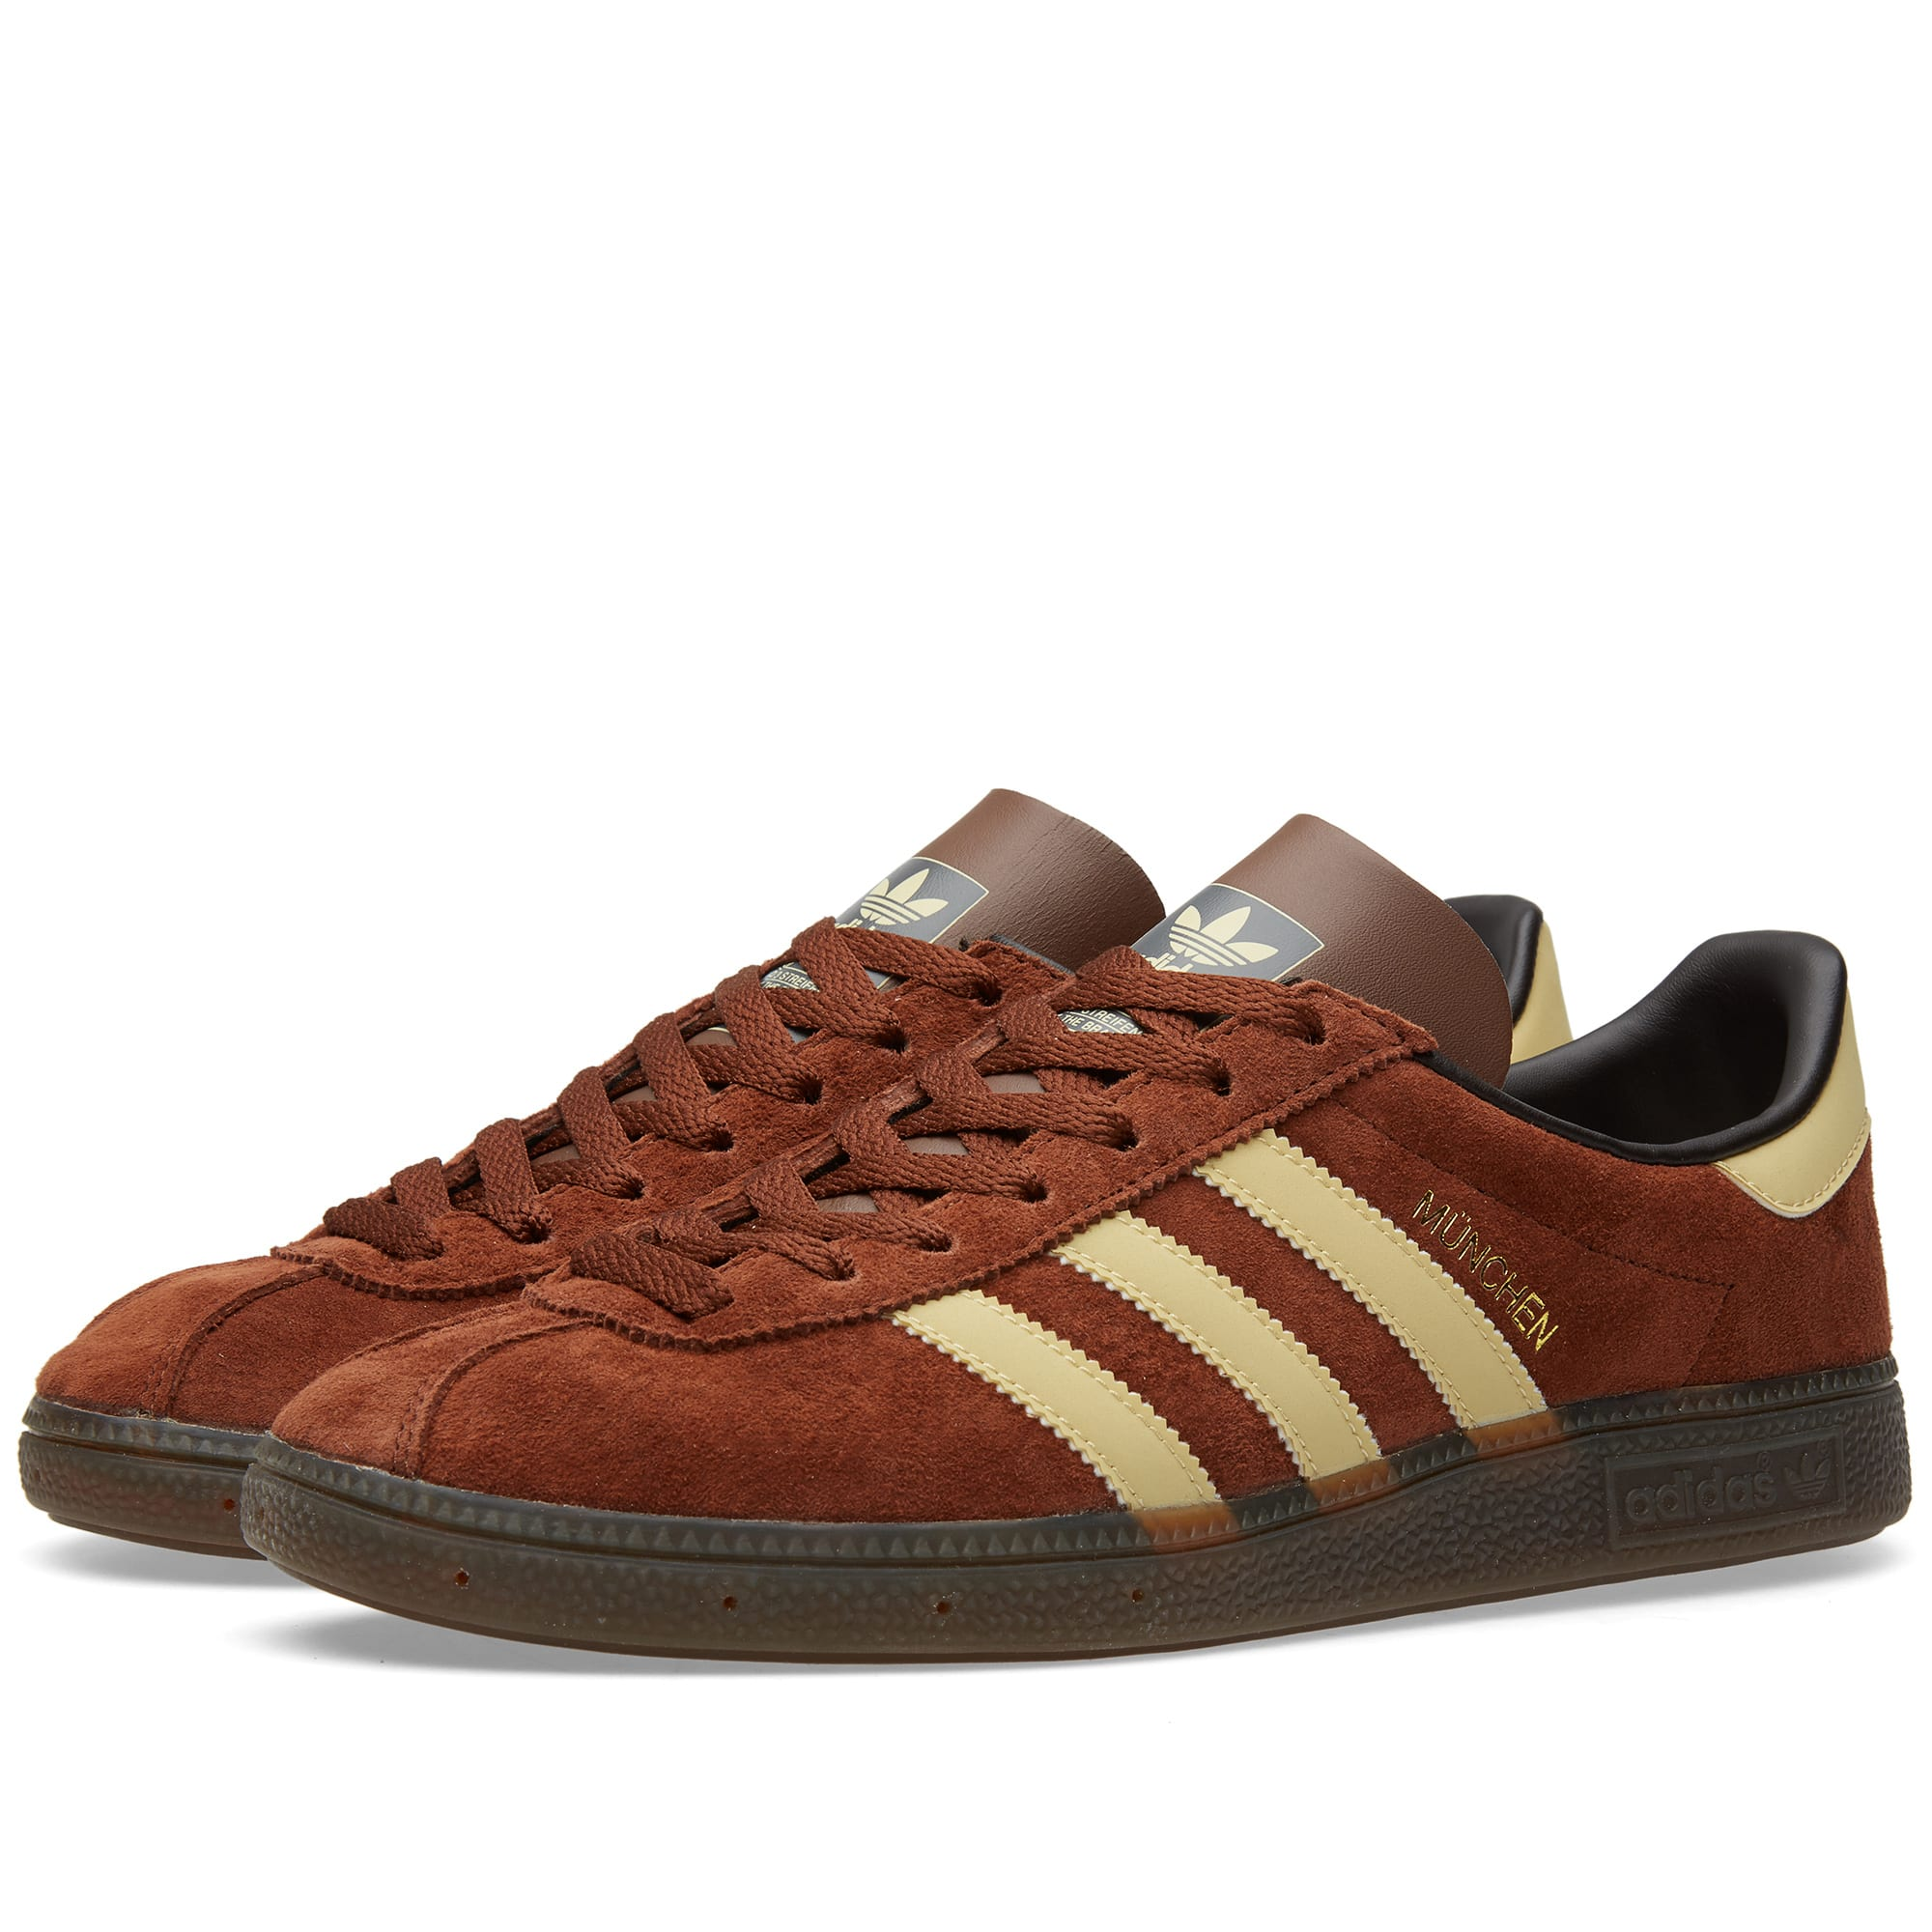 adidas spezial m nchen bark sand vintage white. Black Bedroom Furniture Sets. Home Design Ideas